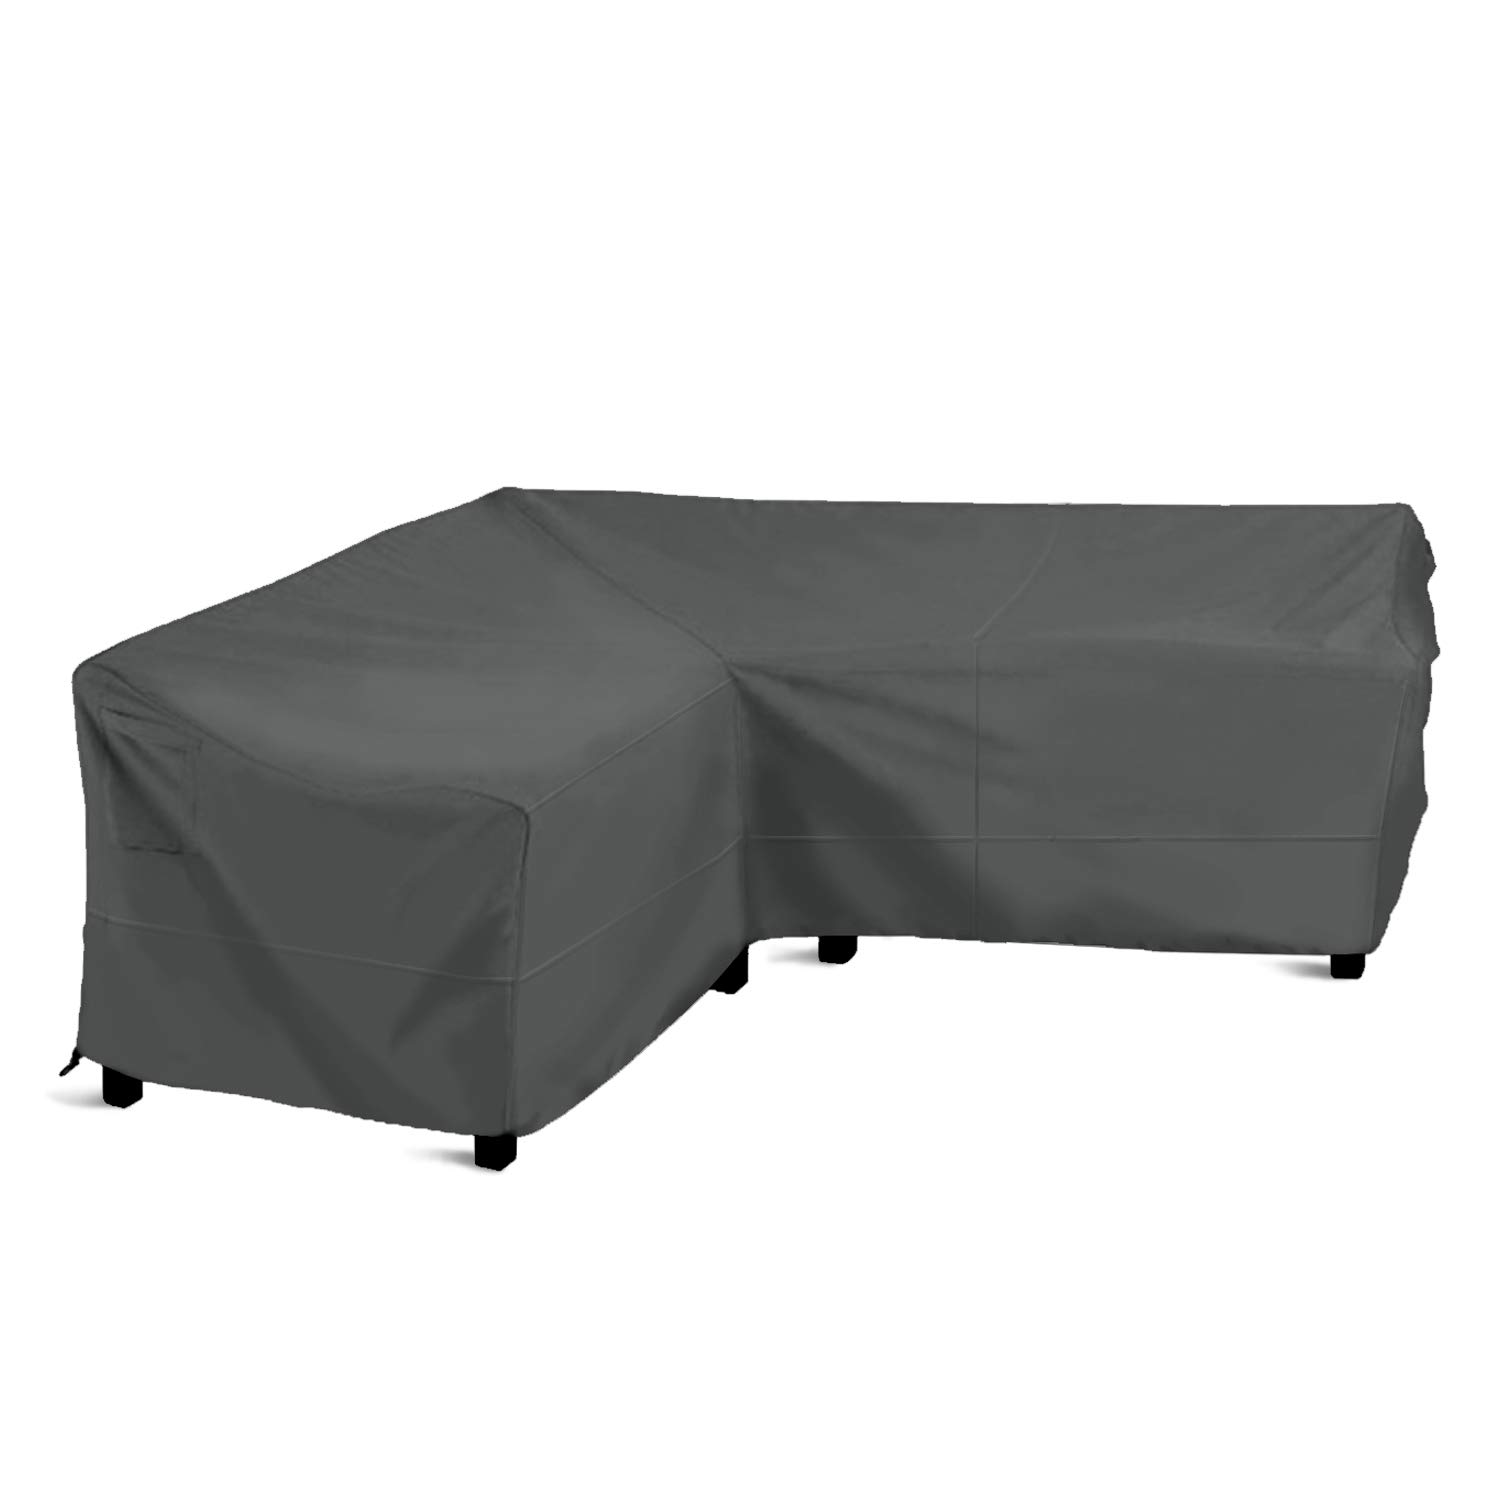 Delxo Sectional Sofa Cover Waterproof - 100% UV & Weather Resistant PVC Coated, V-Shaped, Dark Green by Delxo